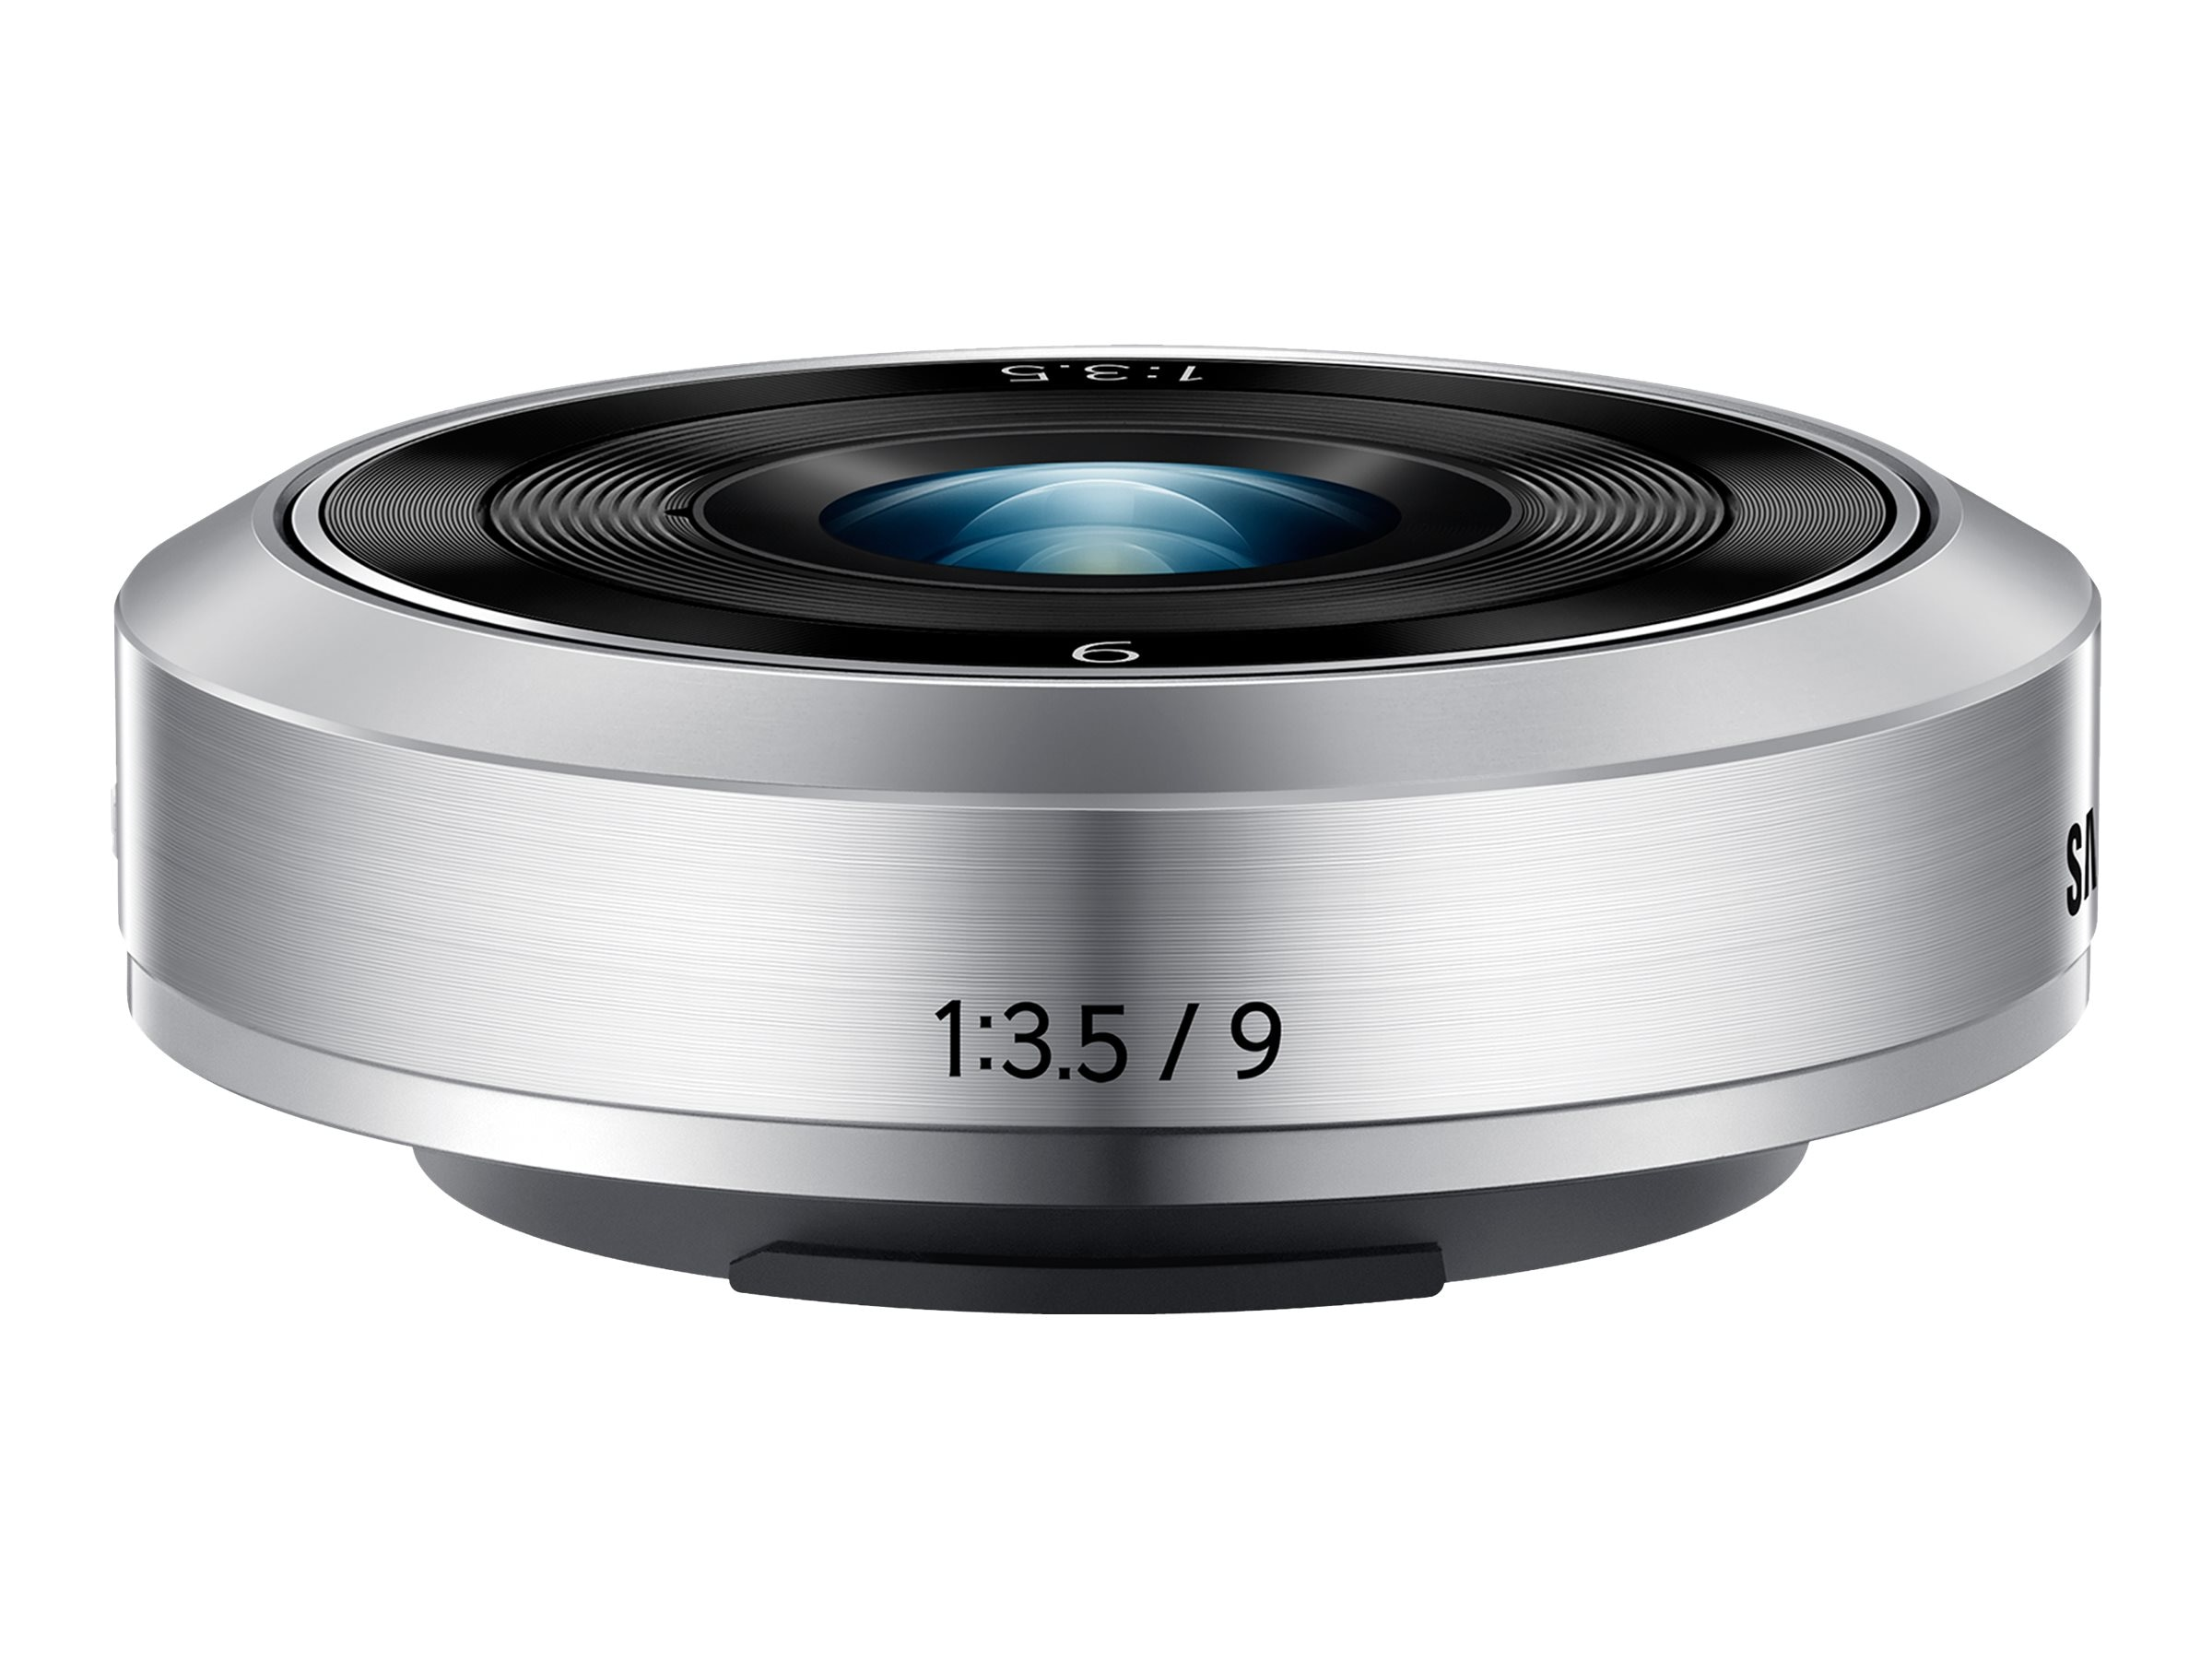 Samsung NX-M 9mm f 3.5 ED Lens, Silver, EX-YN9ZZZZASUS, 18743769, Camera & Camcorder Lenses & Filters